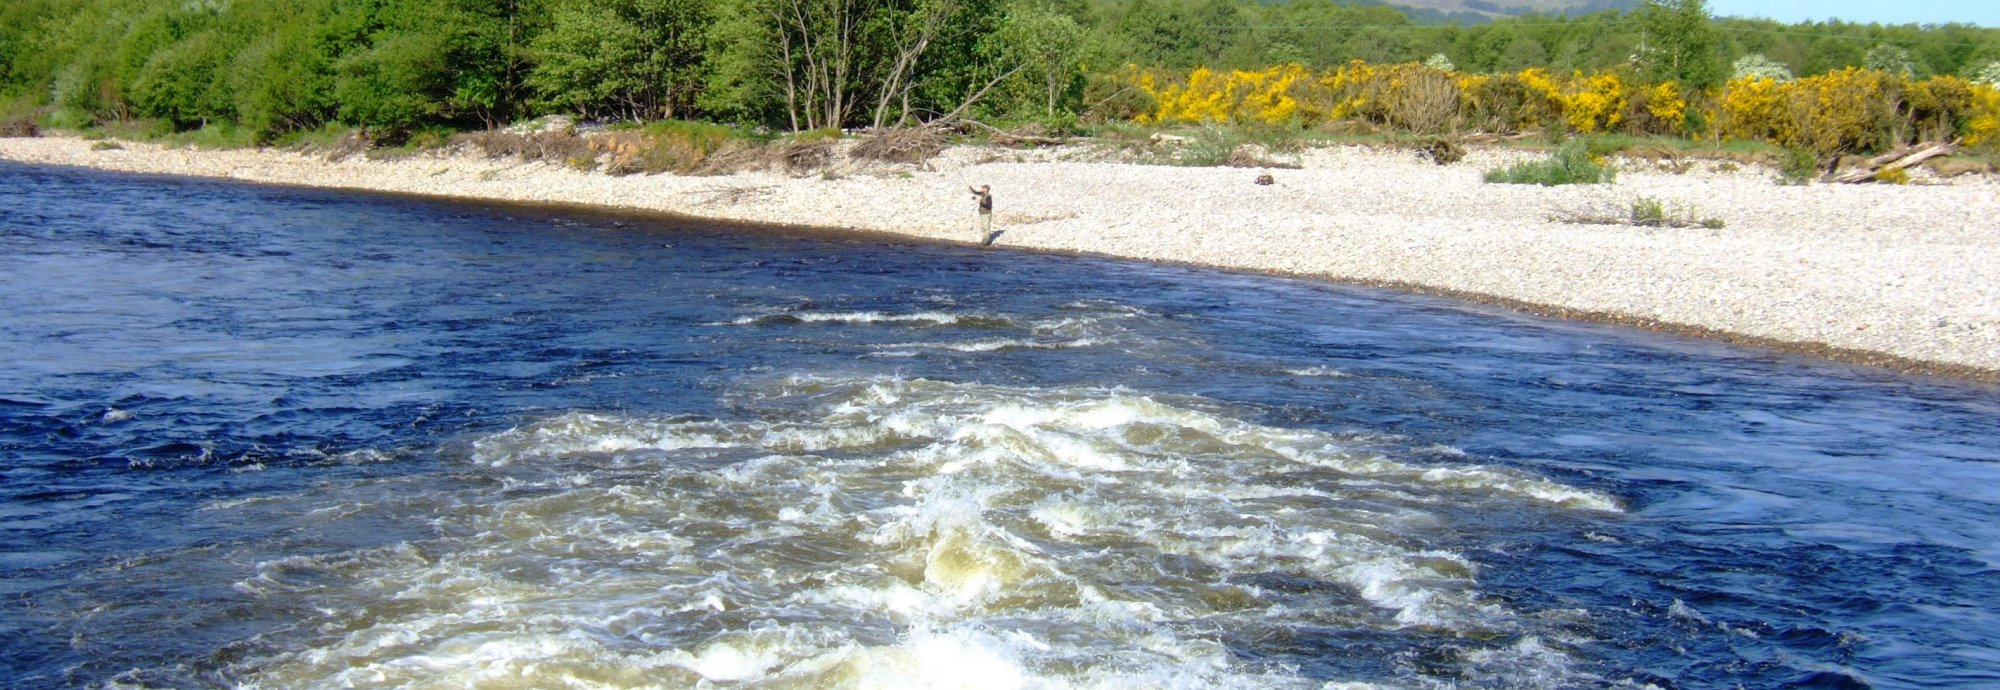 White water from the tailrace enters the River Lochy